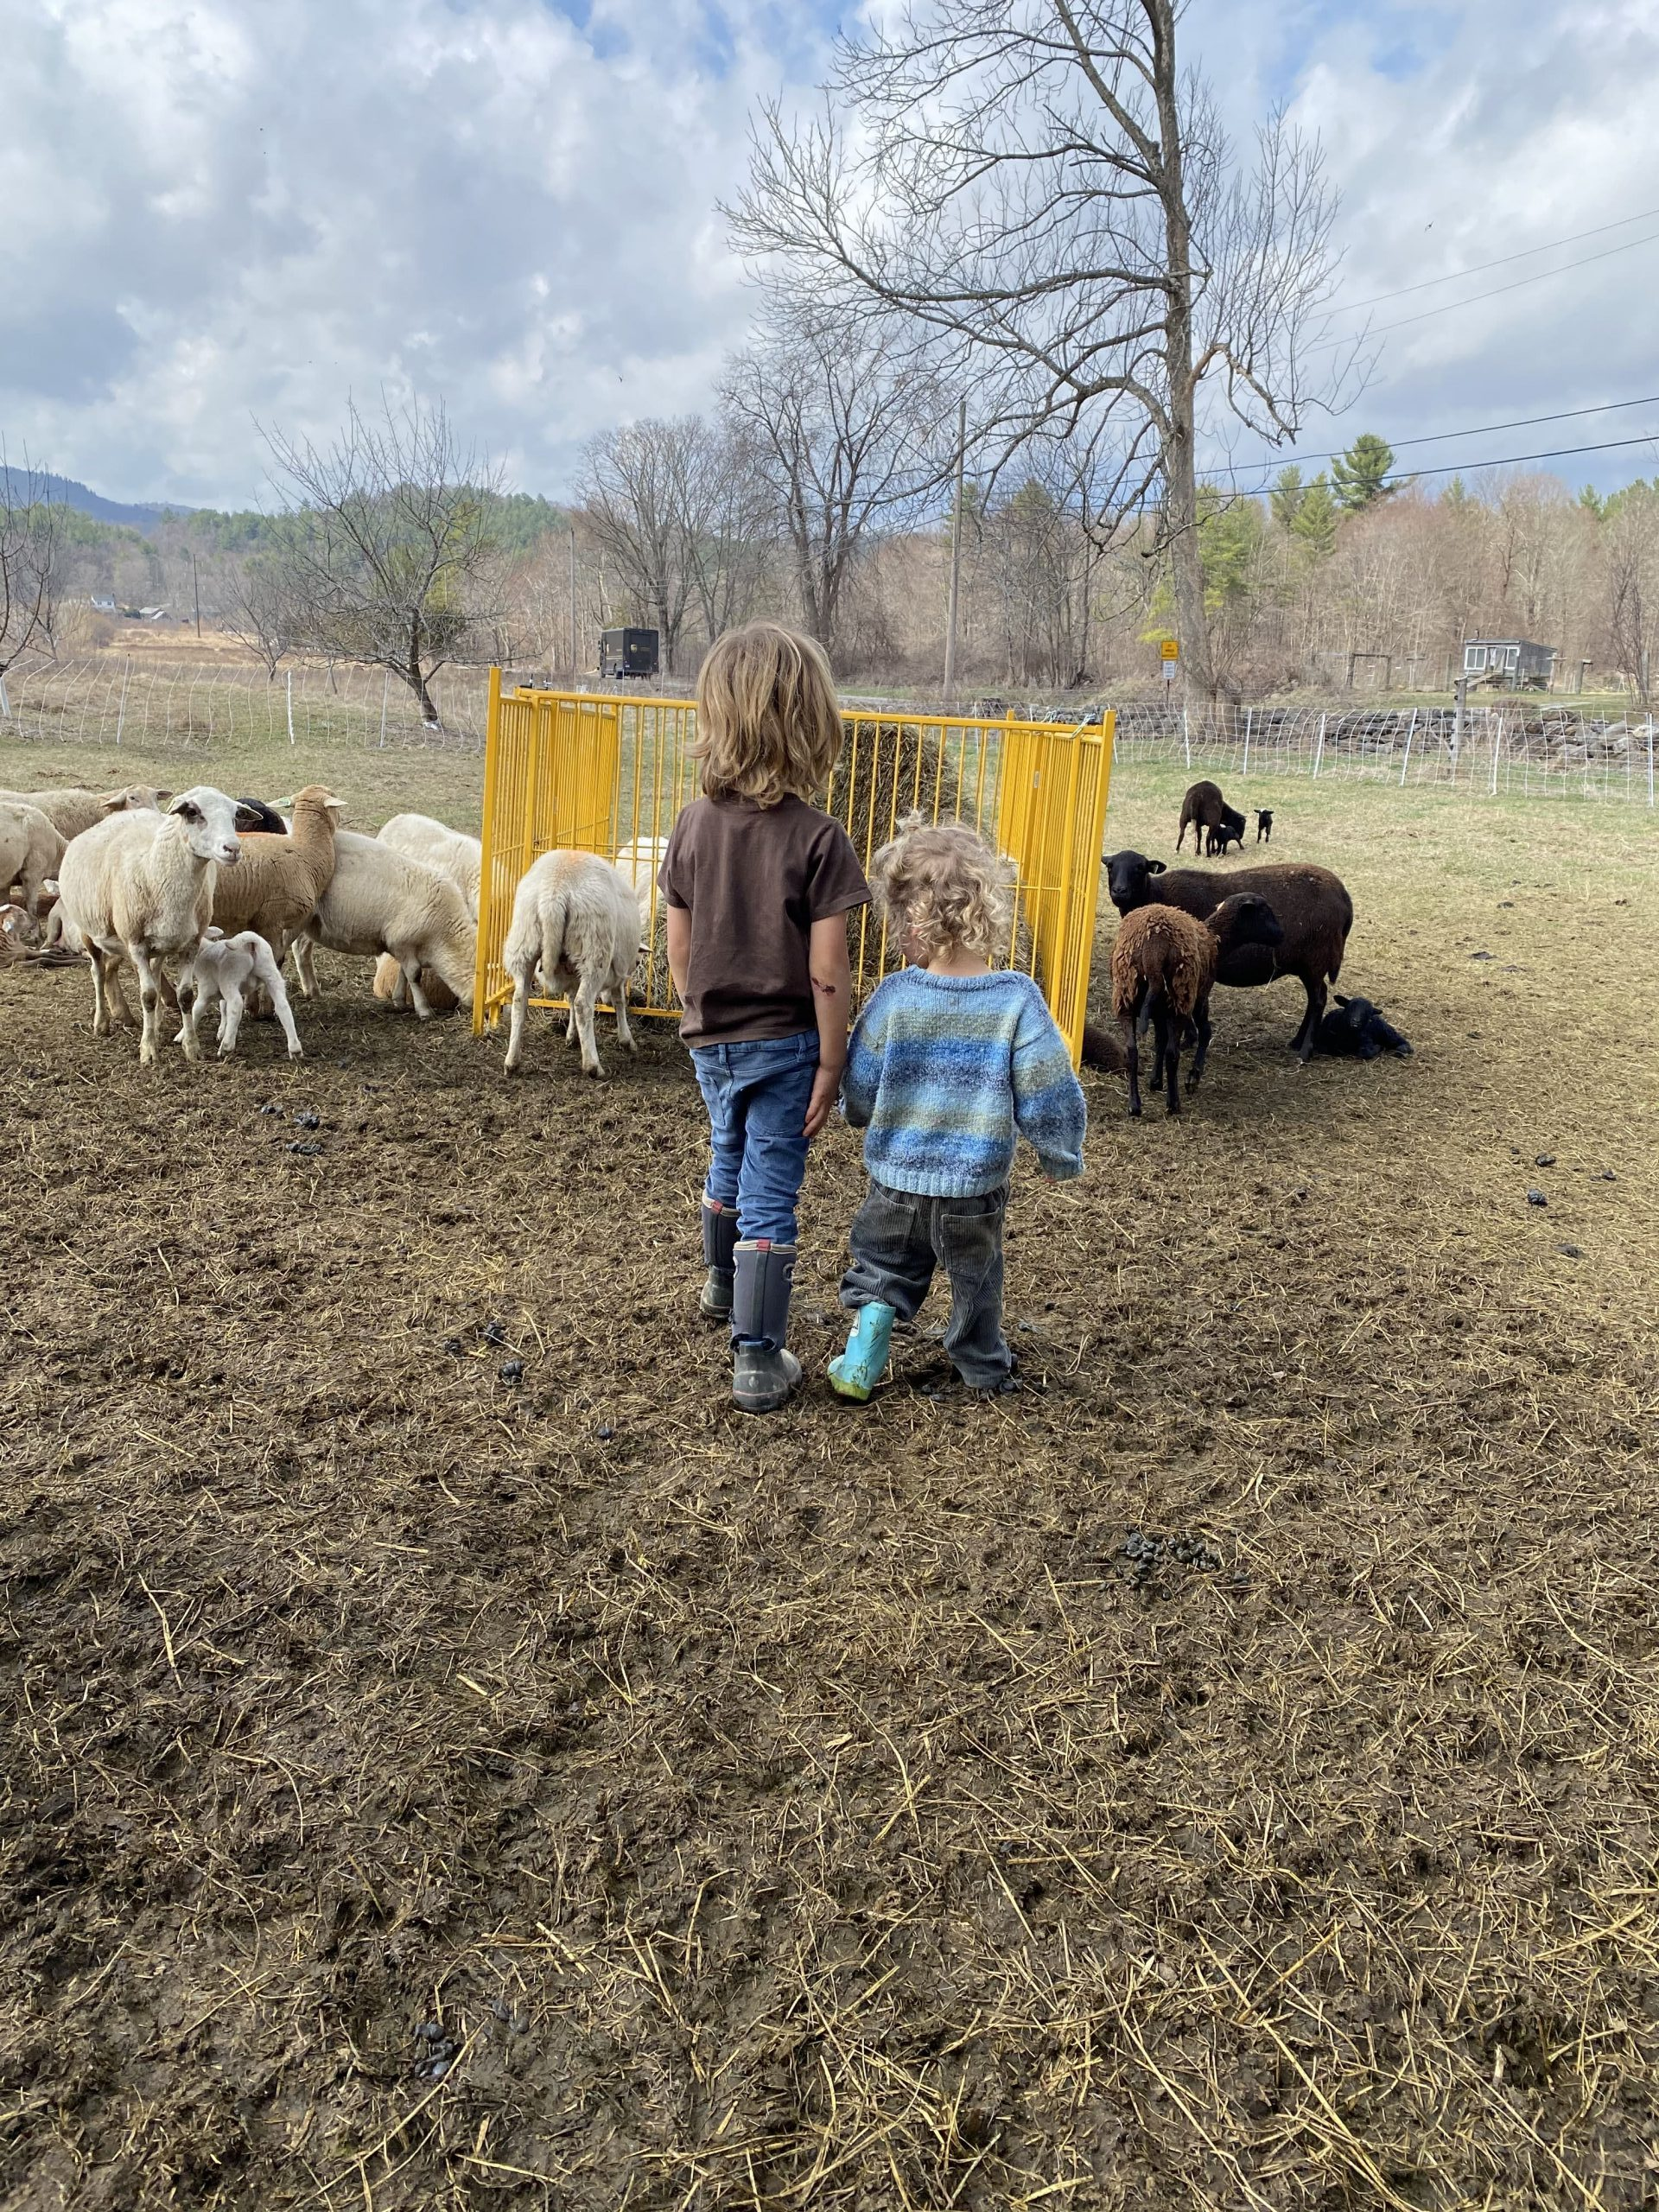 Kids in the lambing pasture